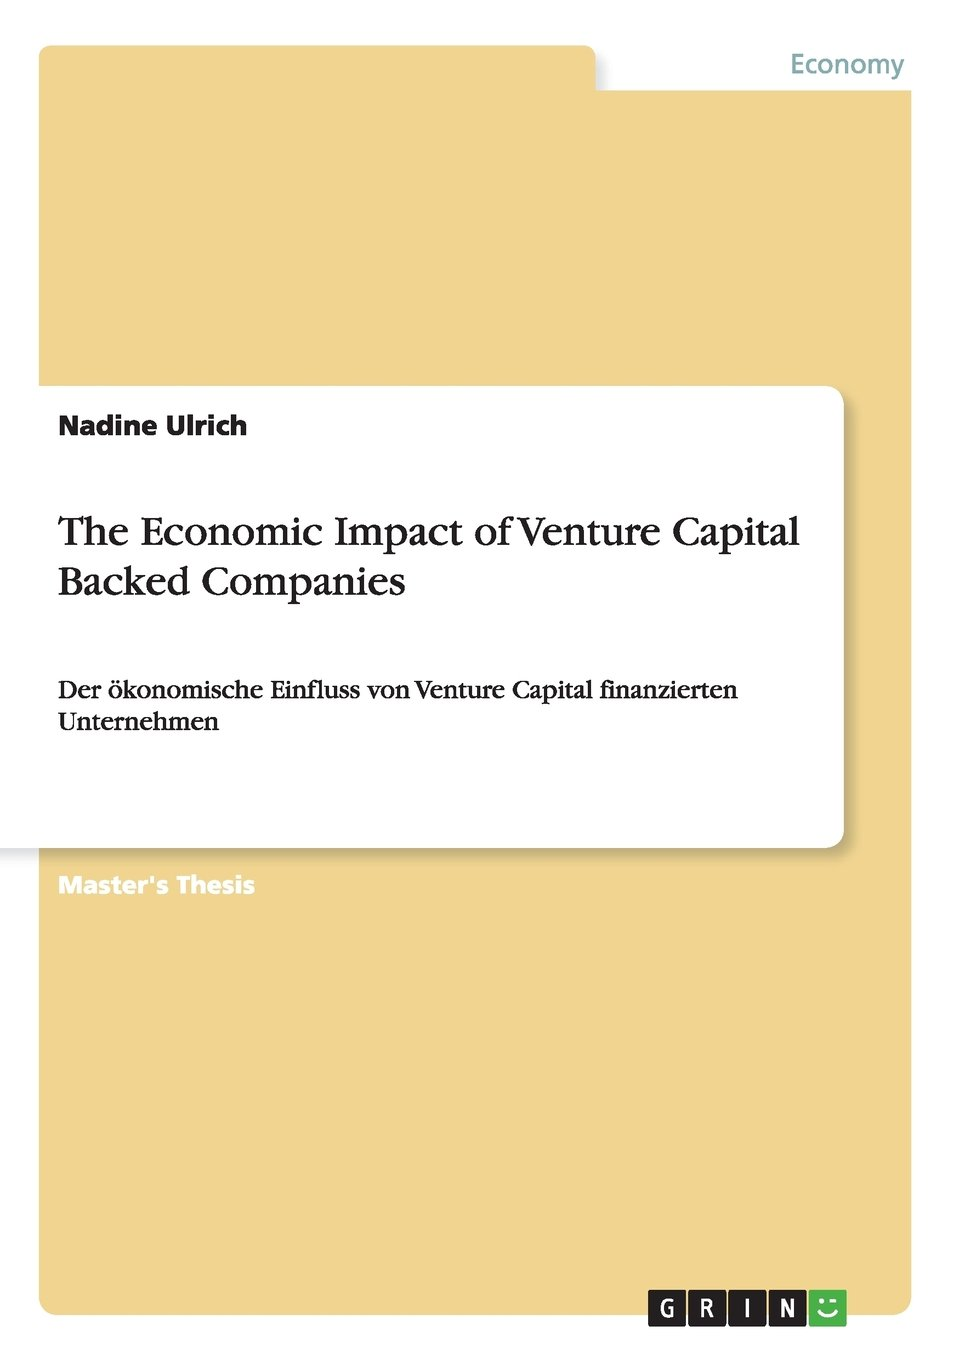 The Economic Impact of Venture Capital Backed Companies